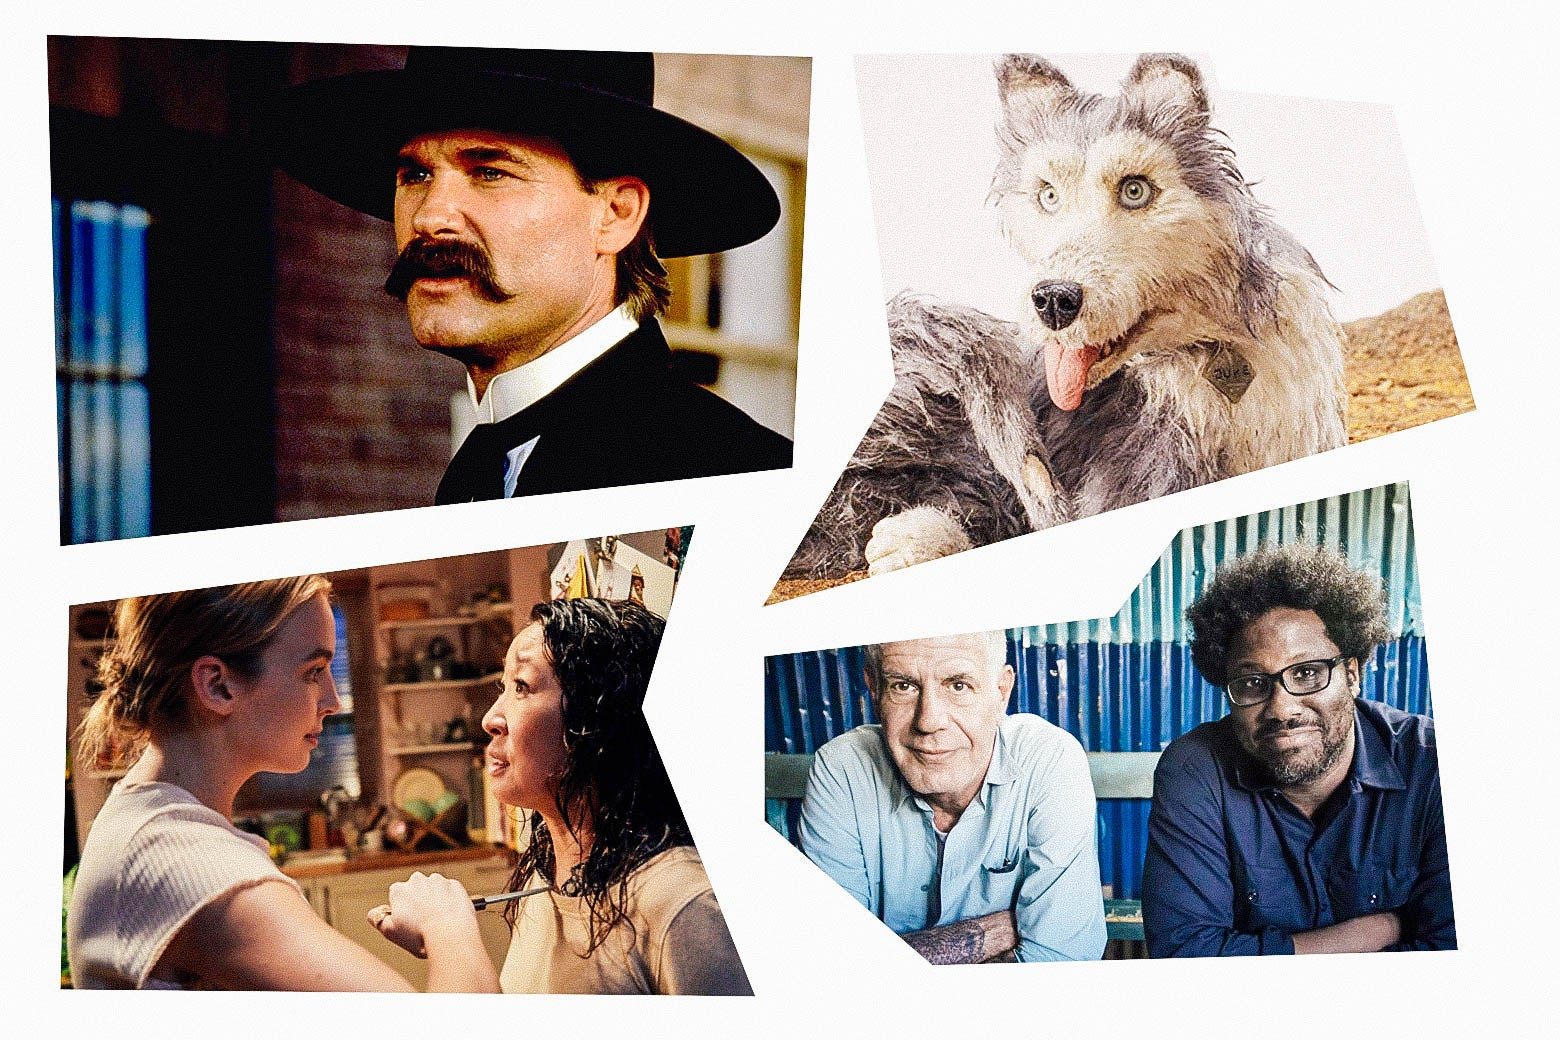 A collage in a mosaic style features stills of Kurt Russell in Tombstone; a claymation dog, Sandra Oh in Killing Eve, and Anthony Bourdain sitting next to W. Kamau Bell.